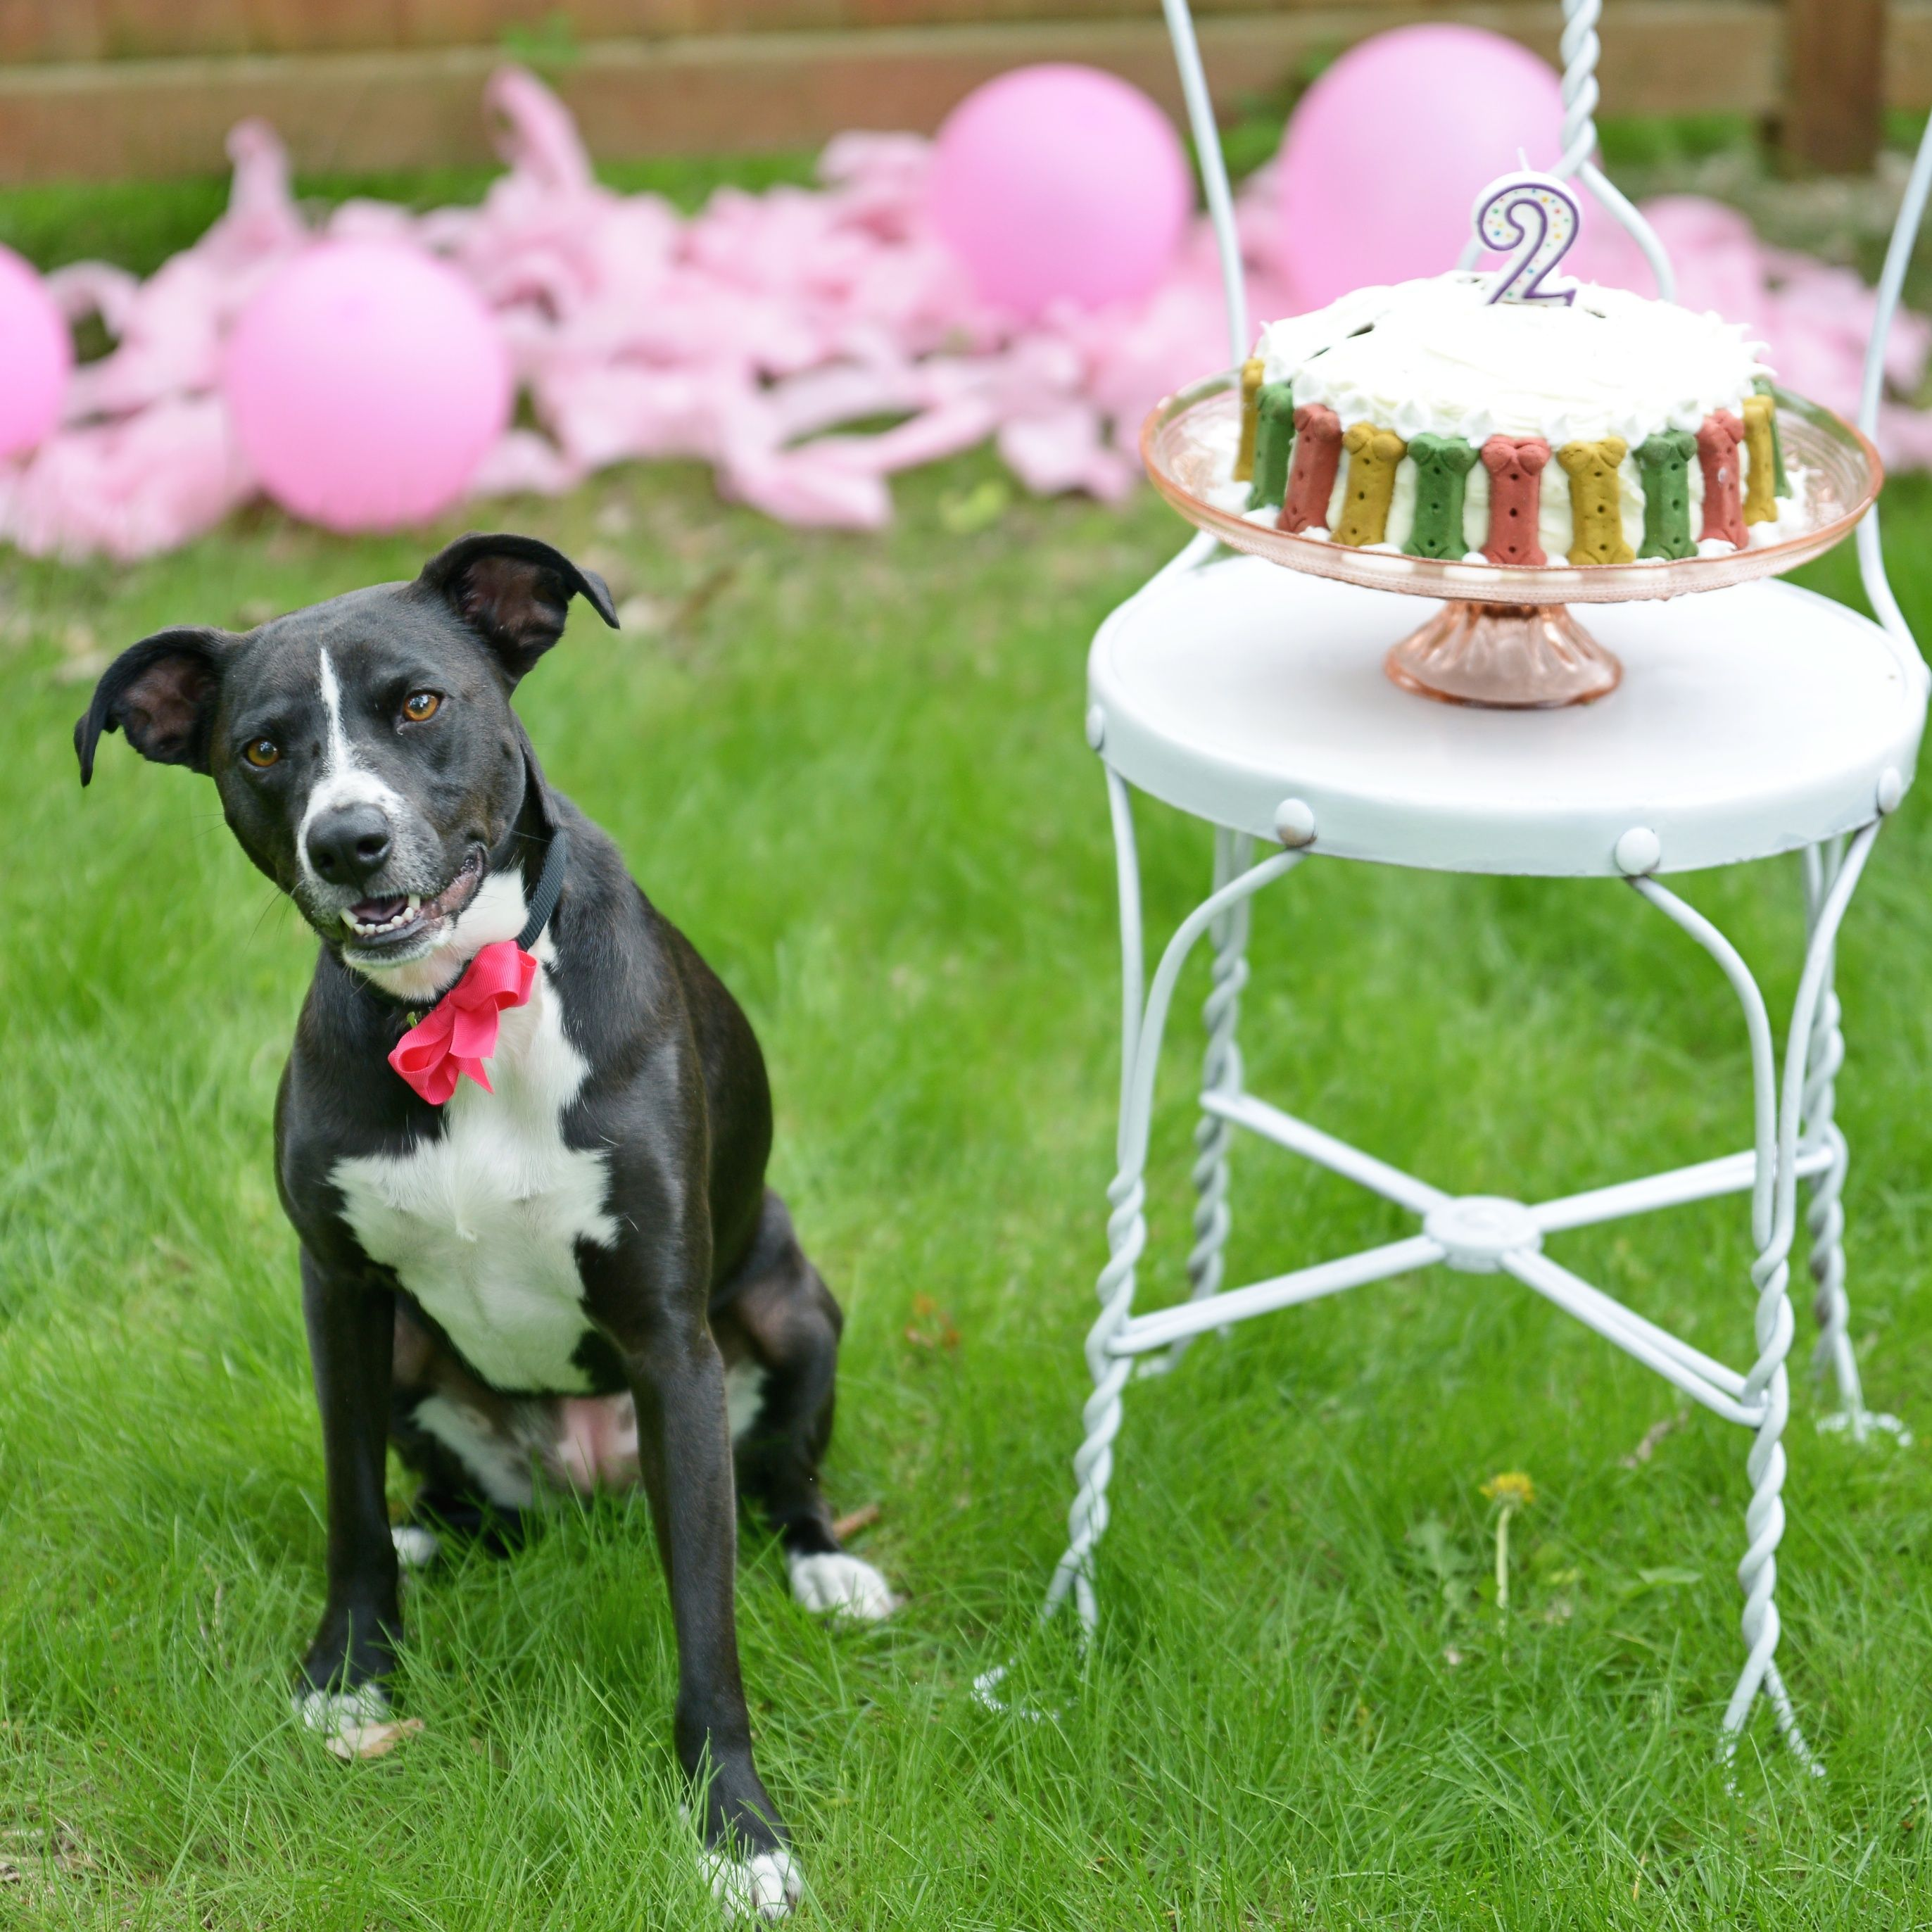 Girl And Dog Birthday Party With Cake Balloons